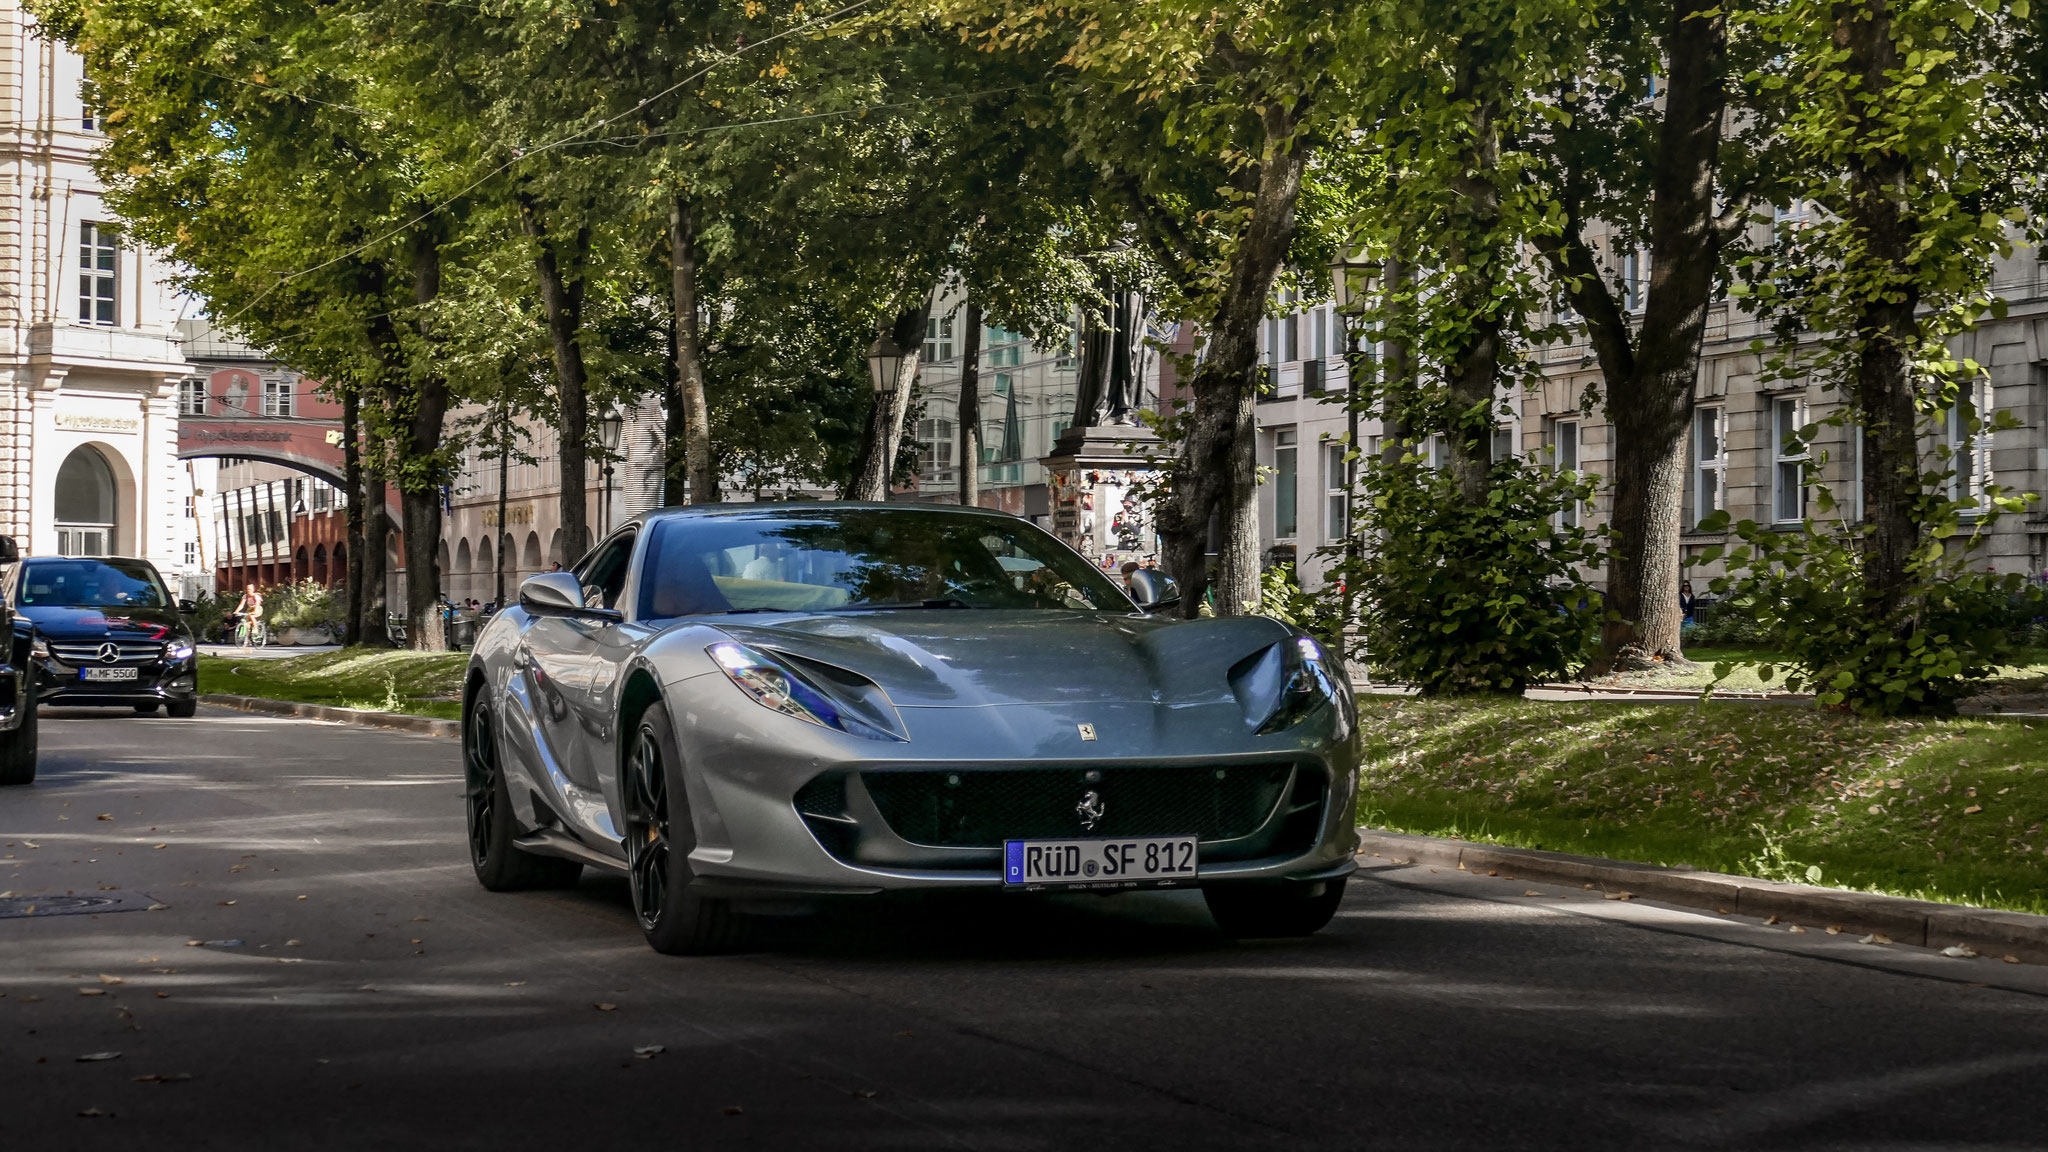 Ferrari 812 Superfast - RÜD-SF-812